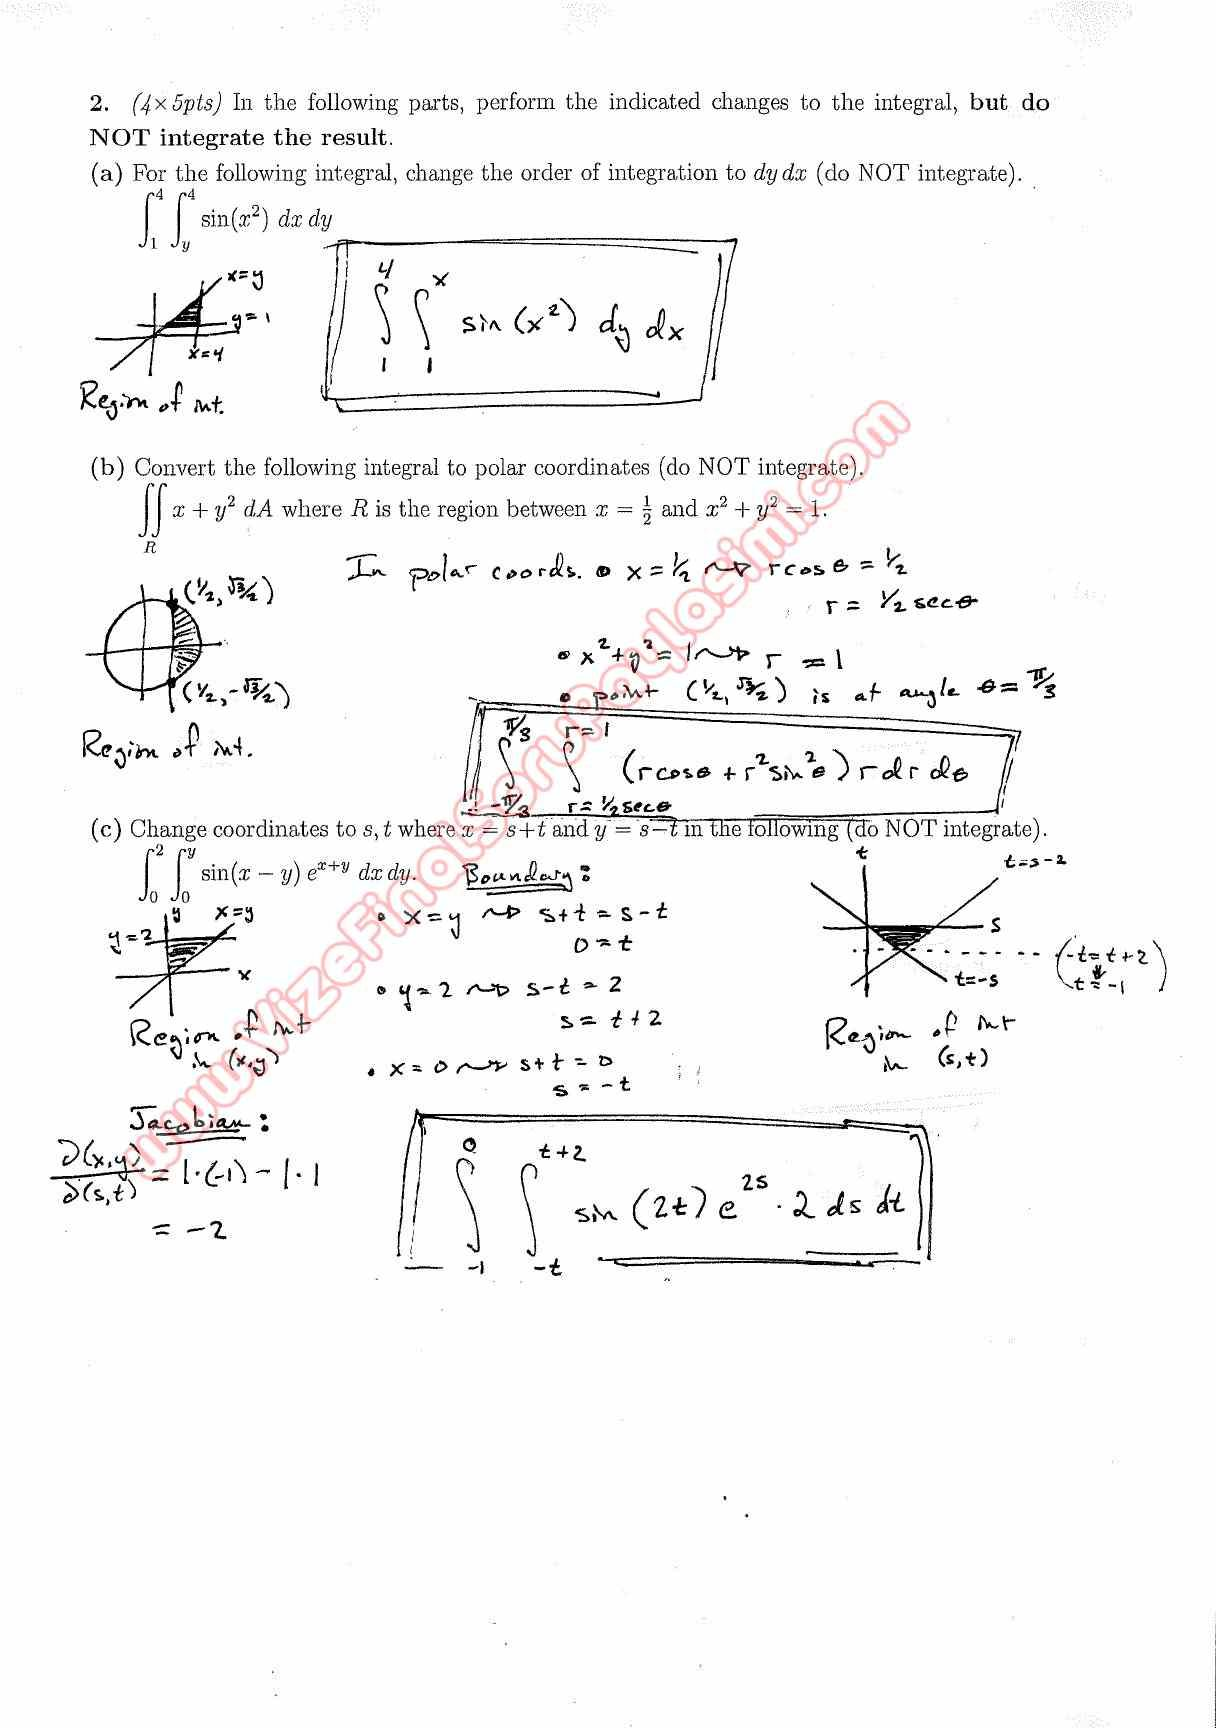 second midterm question papers 2012 3 answer all the questions on the question paper and answer sheet 4 pay special attention to spelling and sentence this year, 2012, is a leap year.